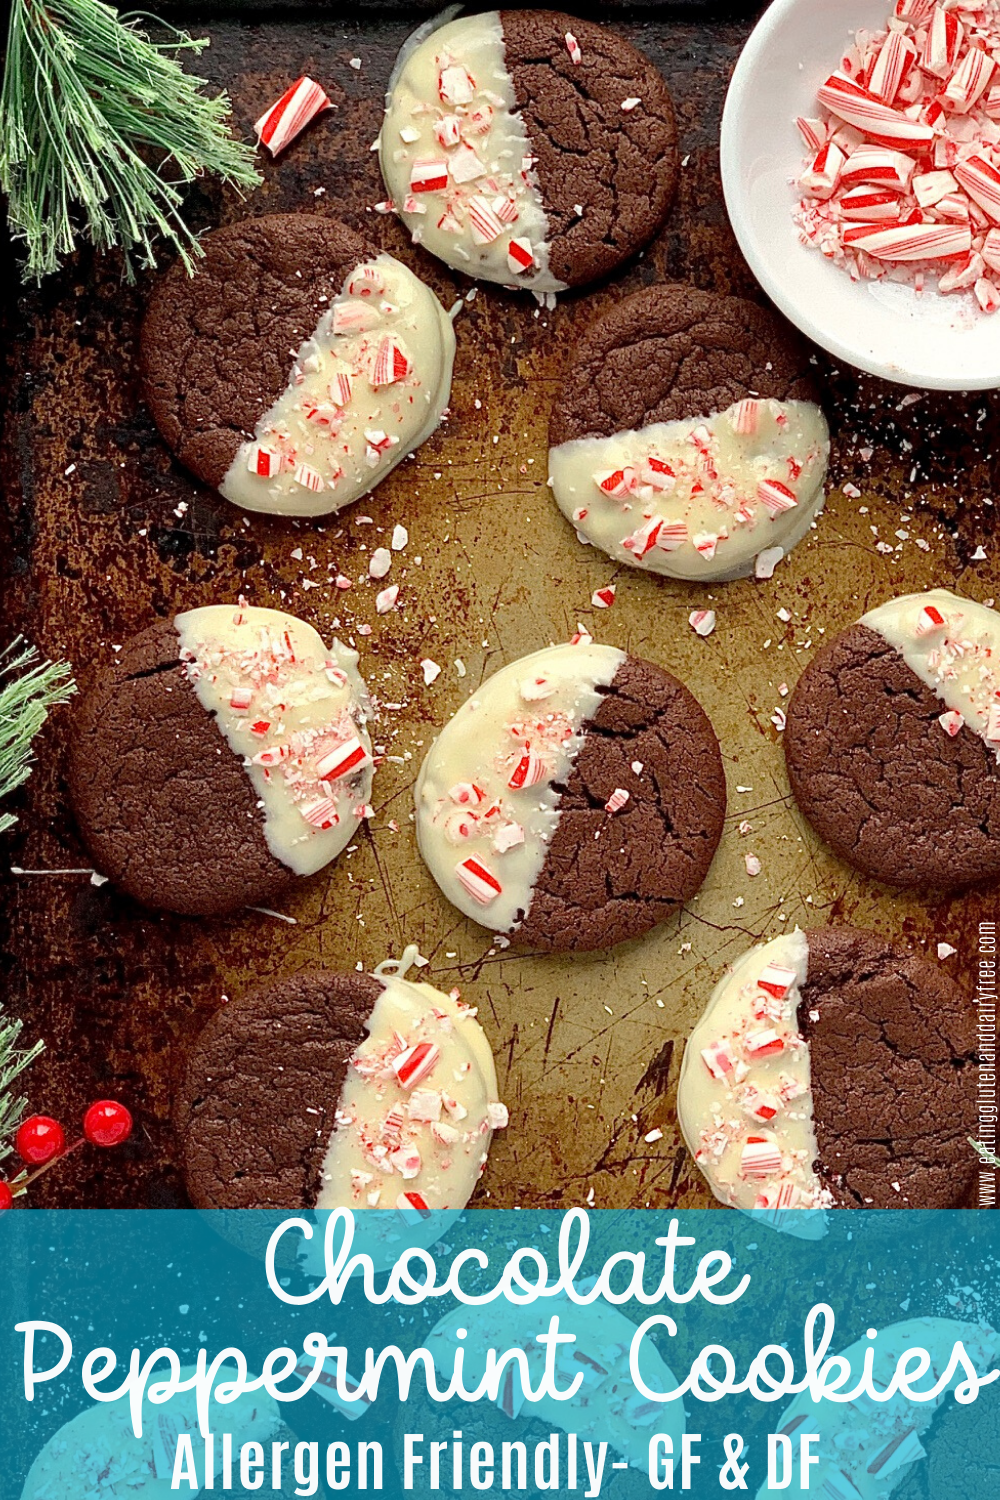 chocolate peppermint cookies dipped in white chocolate and sprinkled with crushed candy canes on a cookie sheet